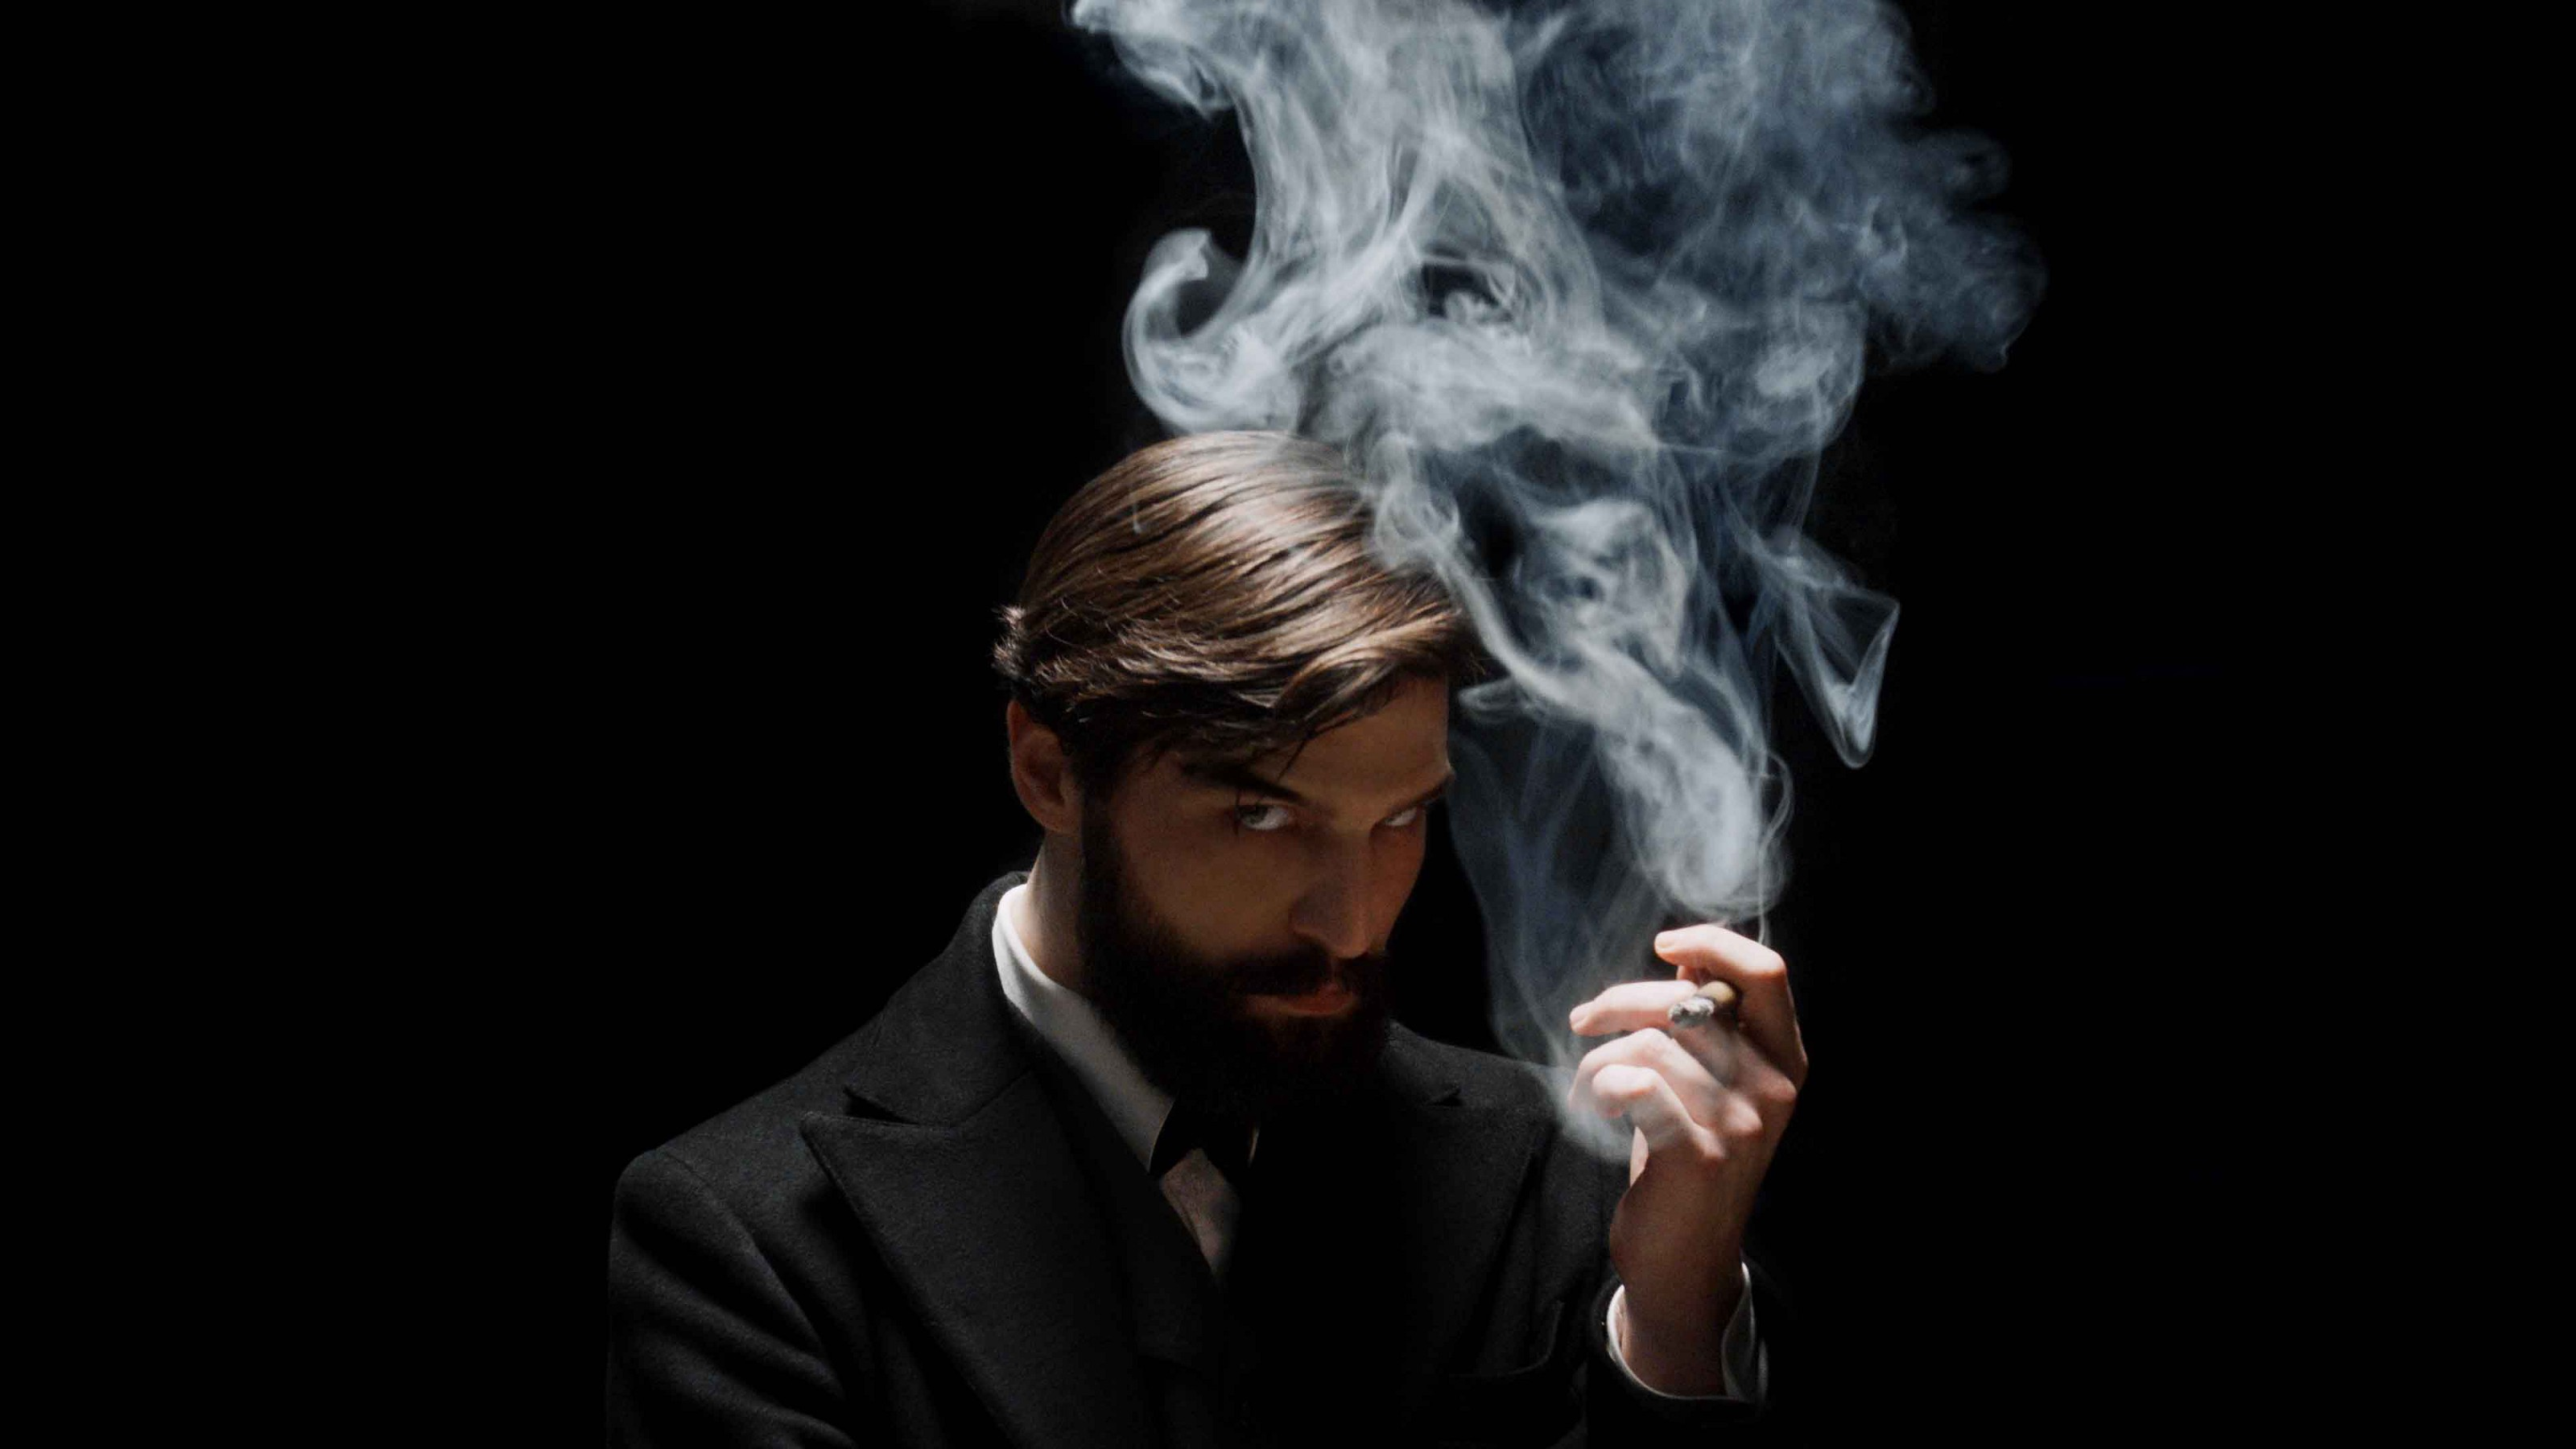 Actor Robert Finster as Sigmund Freud. He broods against a black background, with a cloud of smoke rising from his cigarette.